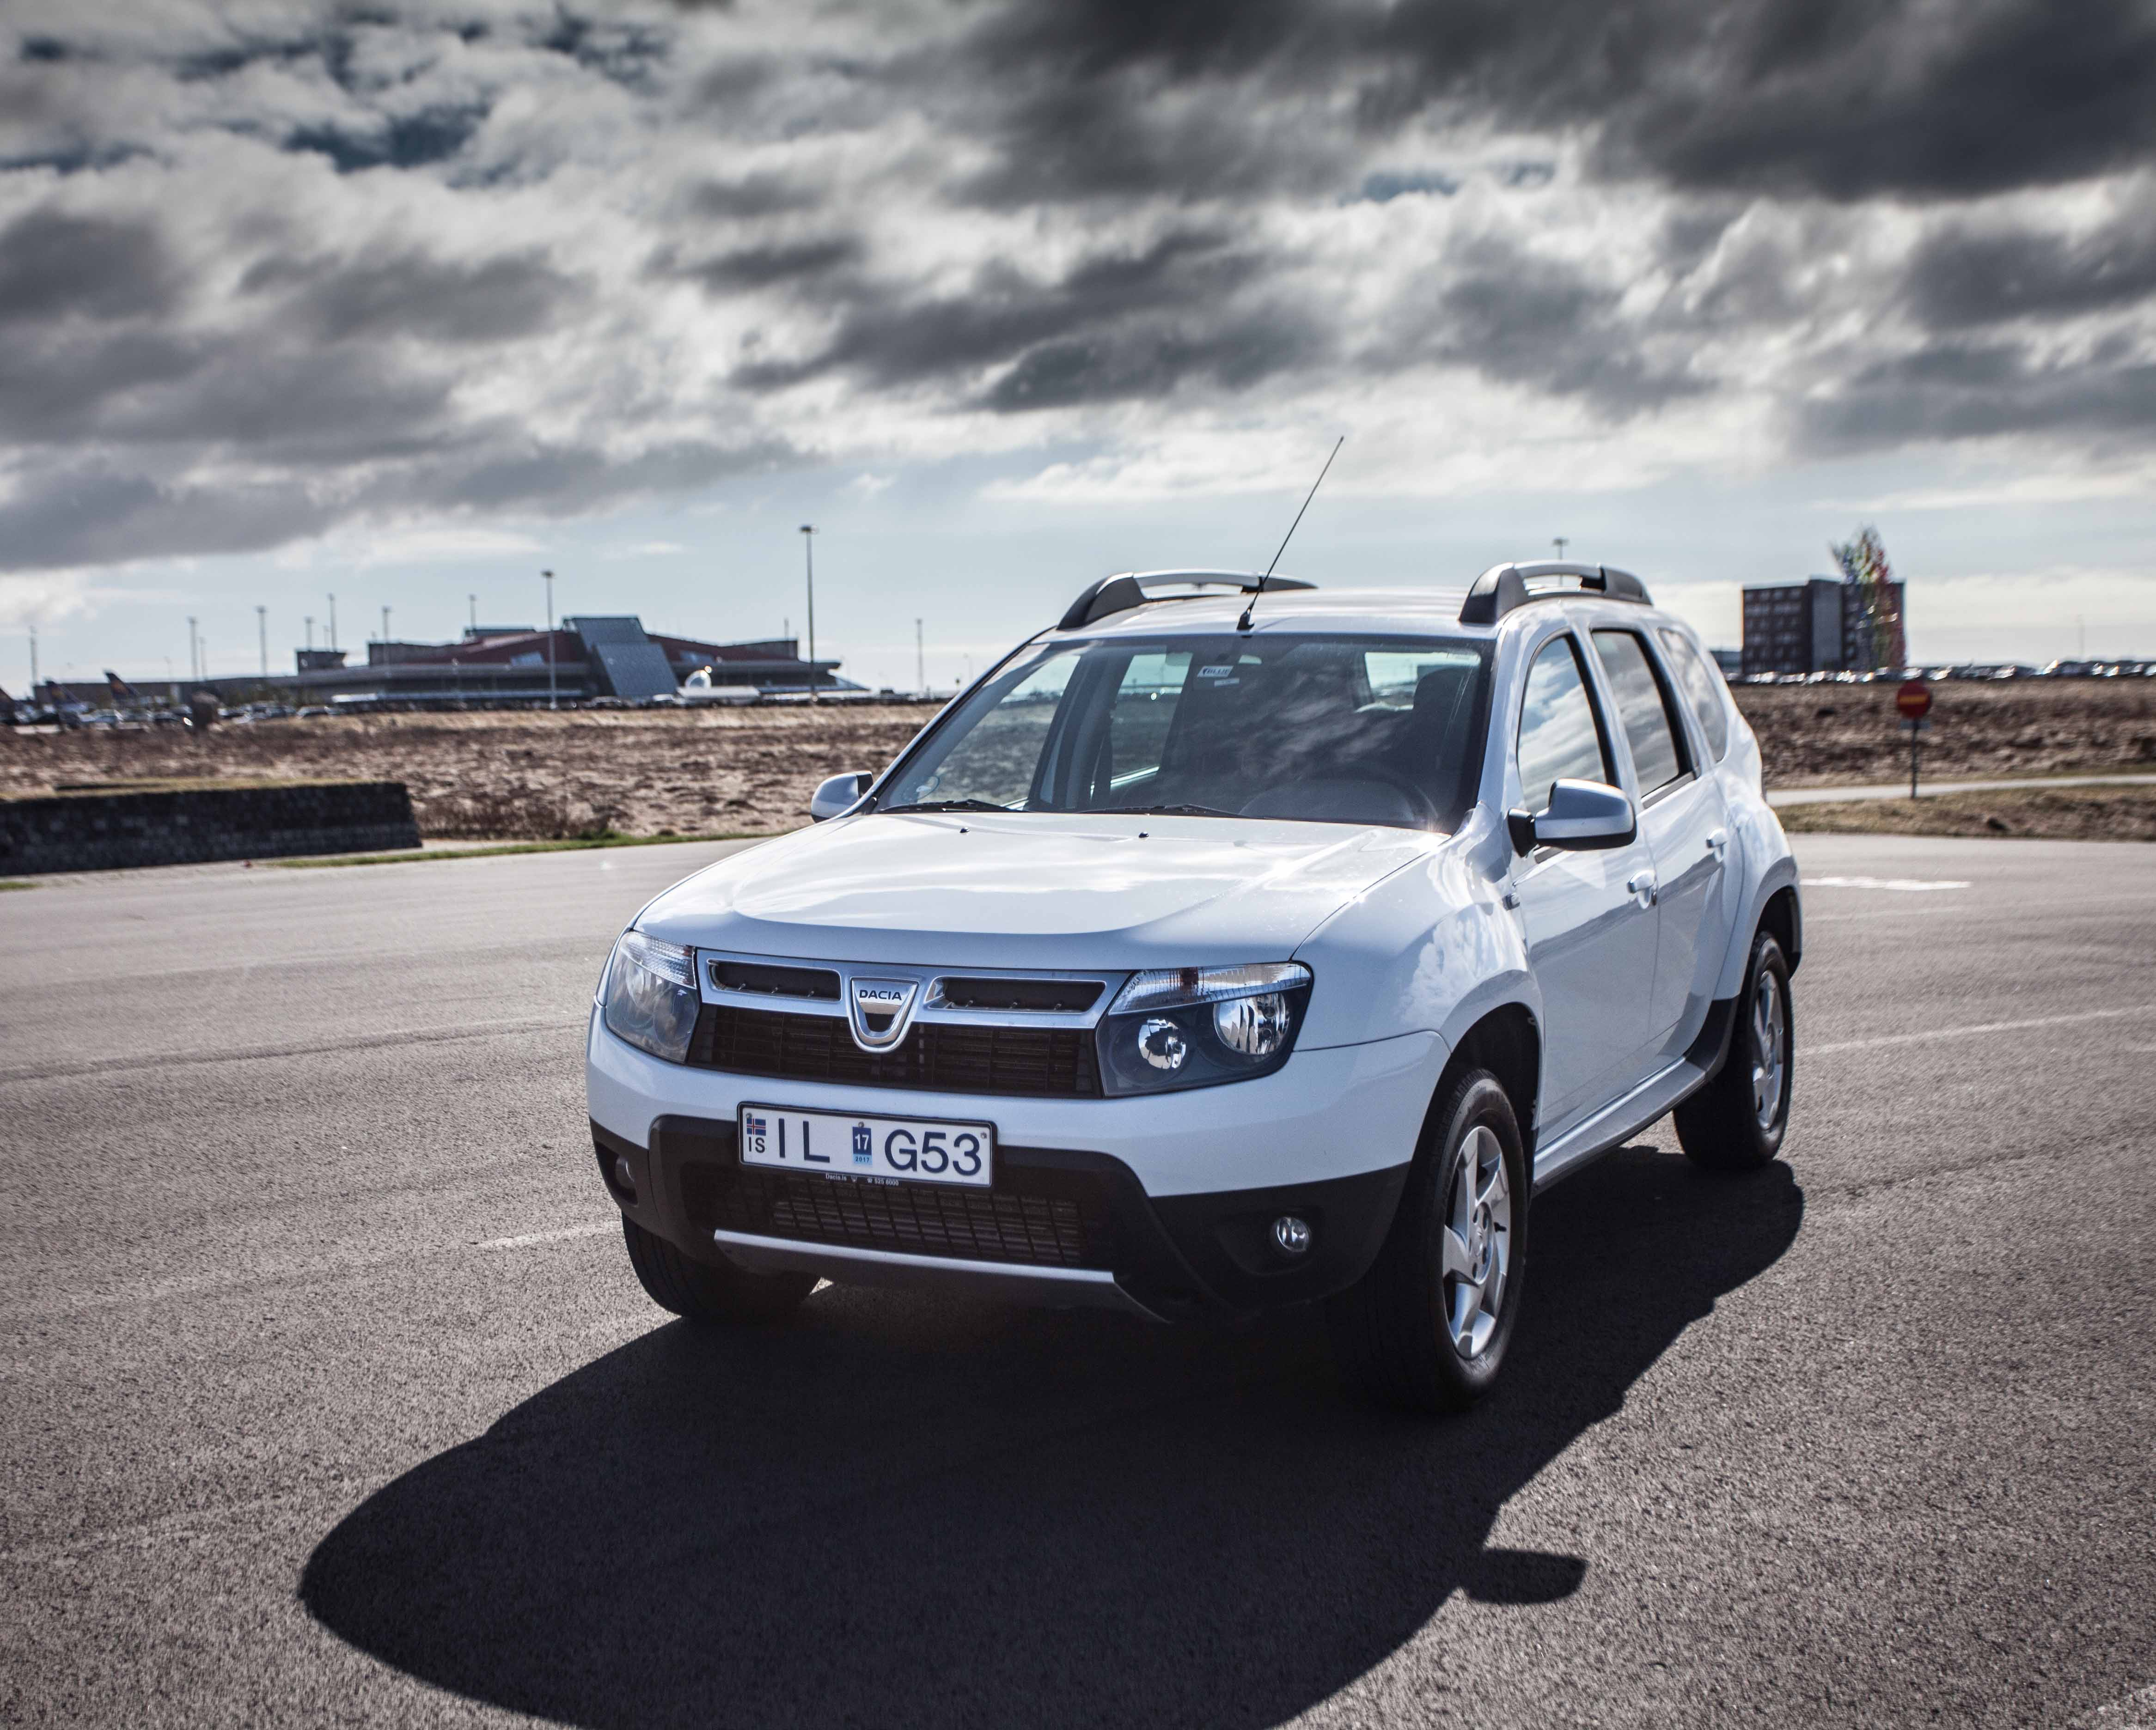 Duster Car Best Romanian Car Producer Dacia Part Of The French Group Renault Set A New Sales